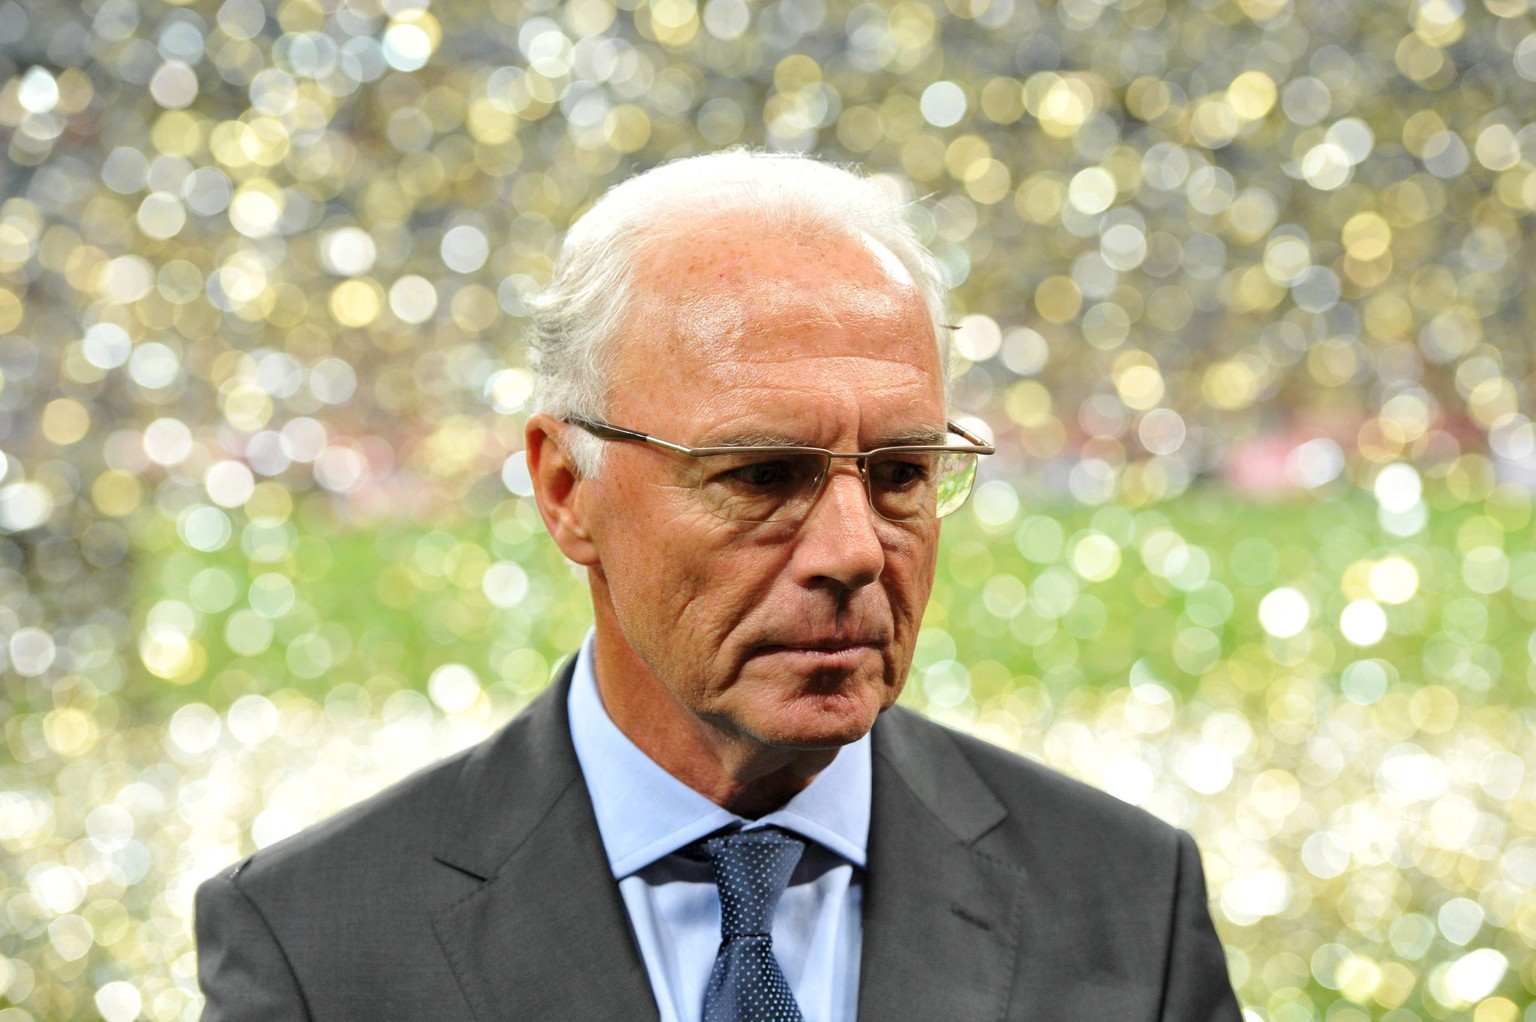 epa05019196 (FILE) A file photograph shows Honoray president of FC Bayern Munich Franz Beckenbauer leaving the pitch after the soccer friendly match between FC Bayern Munich and Real Madrid at the Allianz Arena stadium in Munich, Germany, 13 August 2010. Beckenbauer signed agreement with CONCACAF, signed on their behalf by disgraced former FIFA executive Jack Warner, four days before the 2006 World Cup vote in 2000, interim DFB president Rainer Koch confirmed on 10 November 2015.  EPA/MARC MUELLER